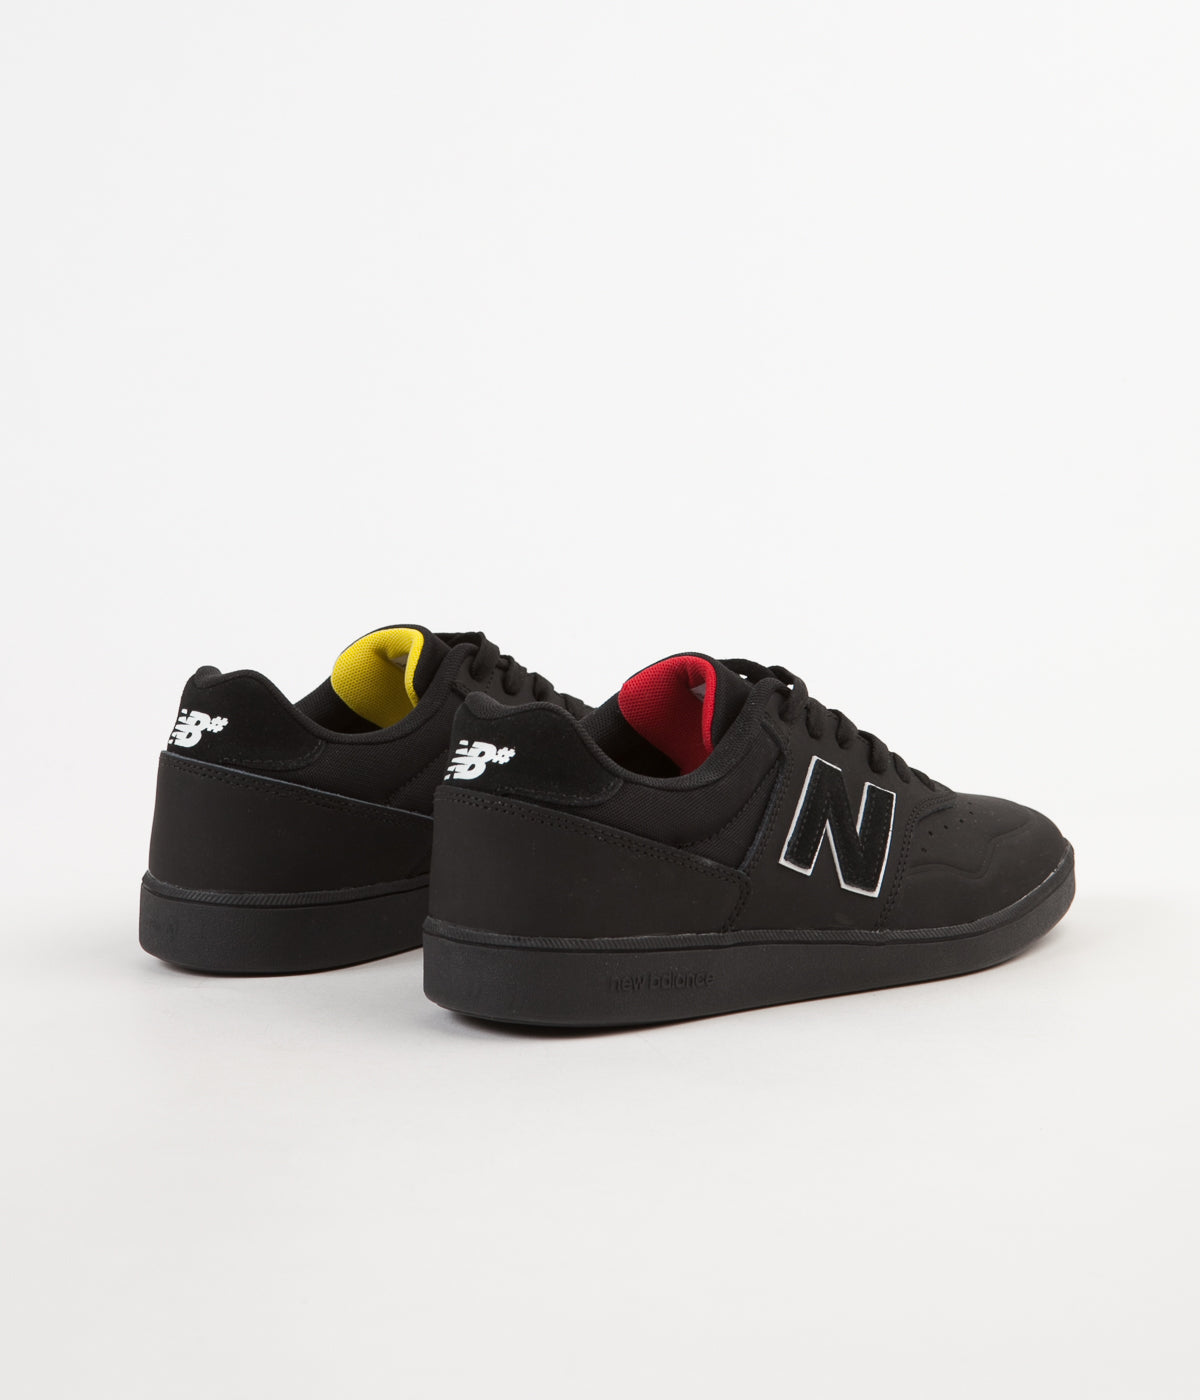 New Balance Numeric 288 Shoes - Black / Black